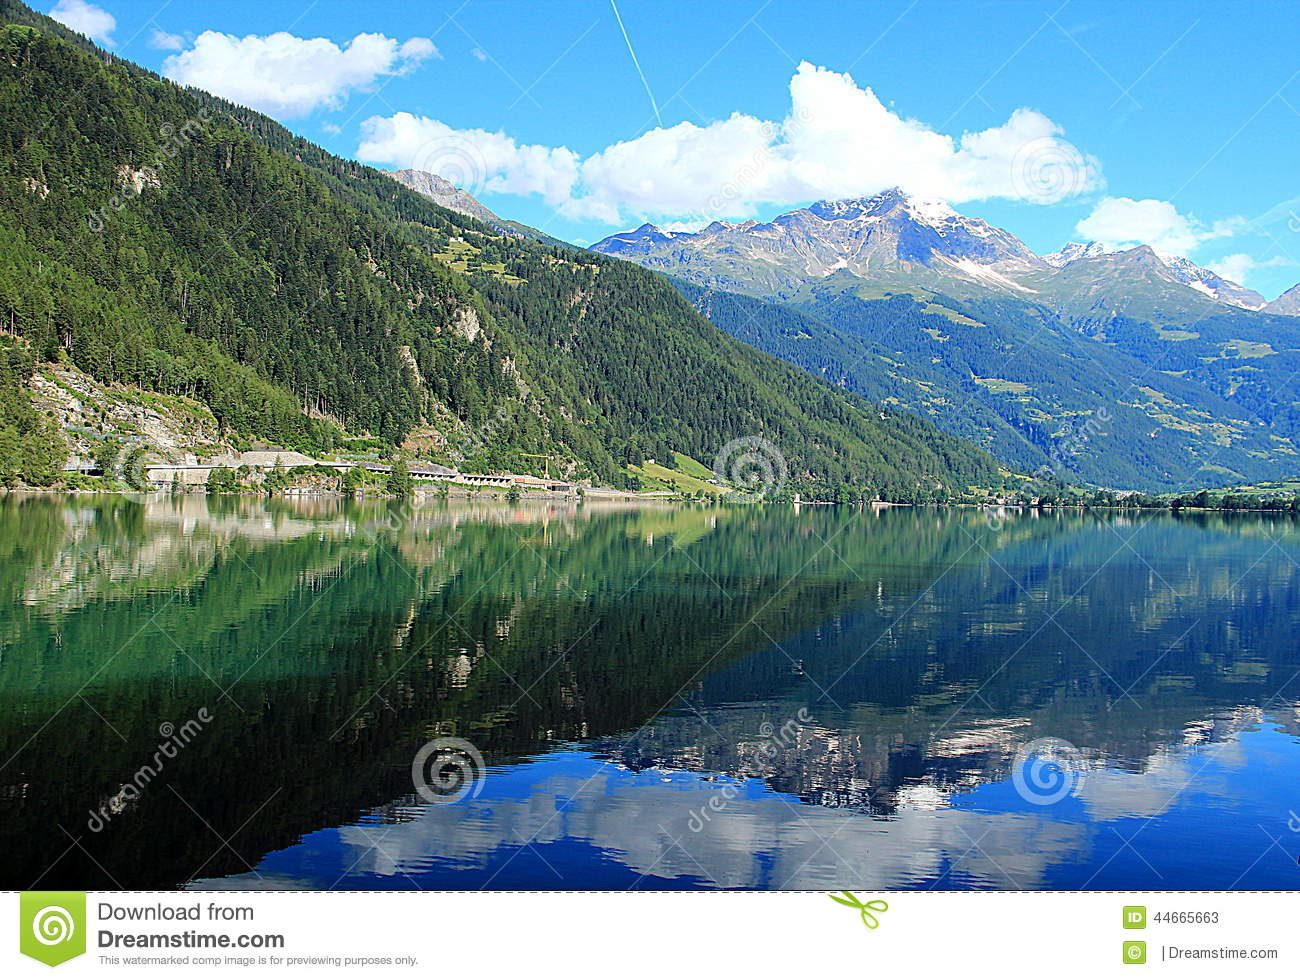 What Are The Natural Resources In Switzerland Are Used